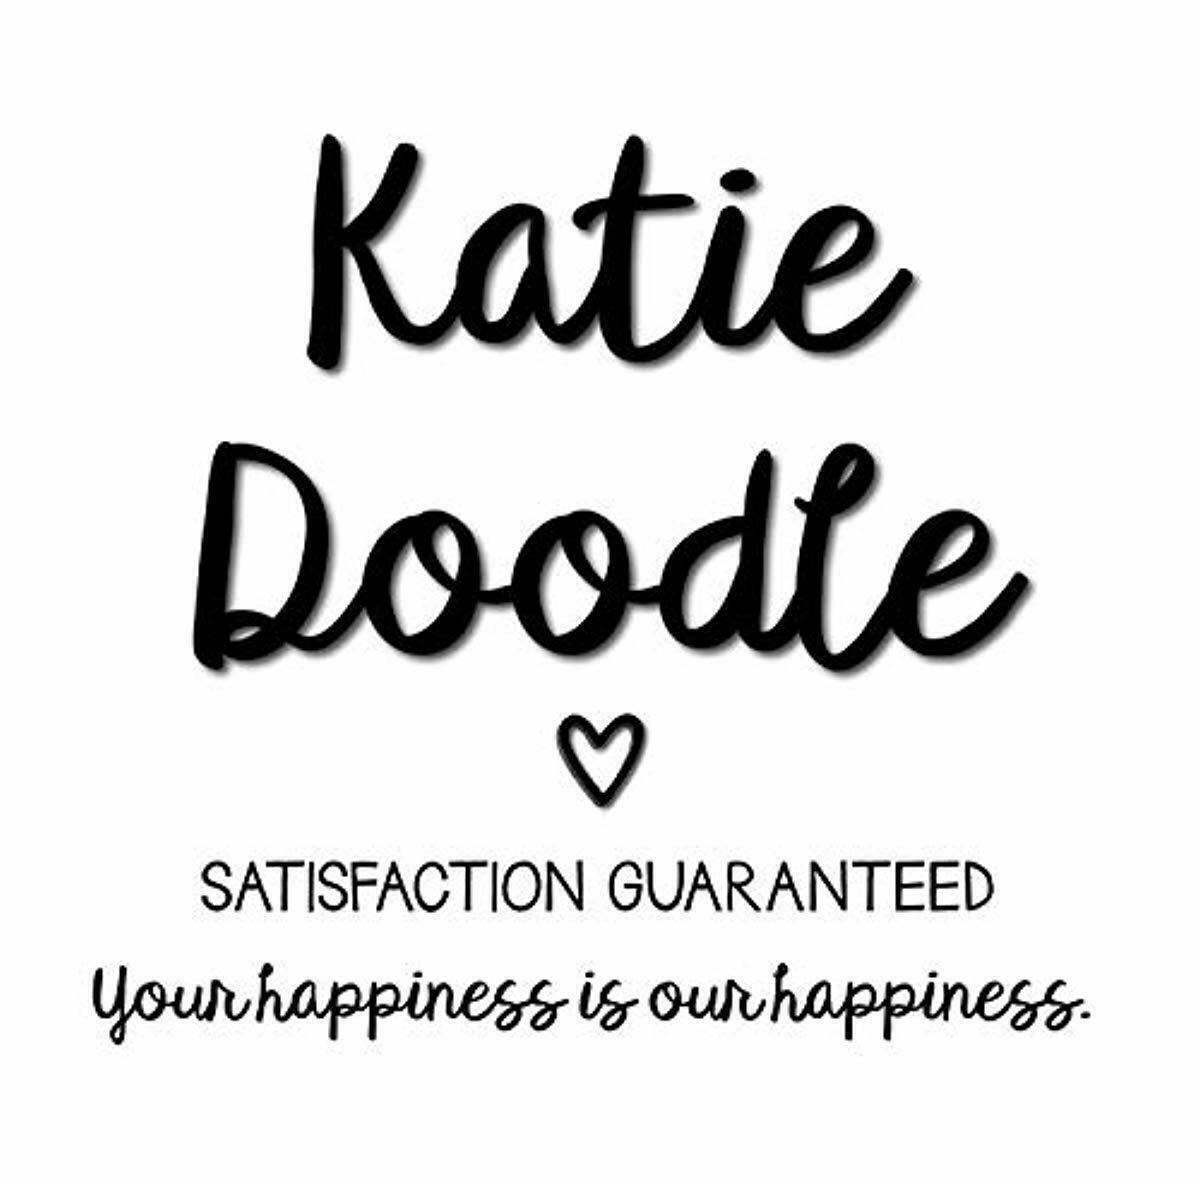 Katie Doodle 70th Birthday Party Supplies Decorations Gifts for Women or Men | I